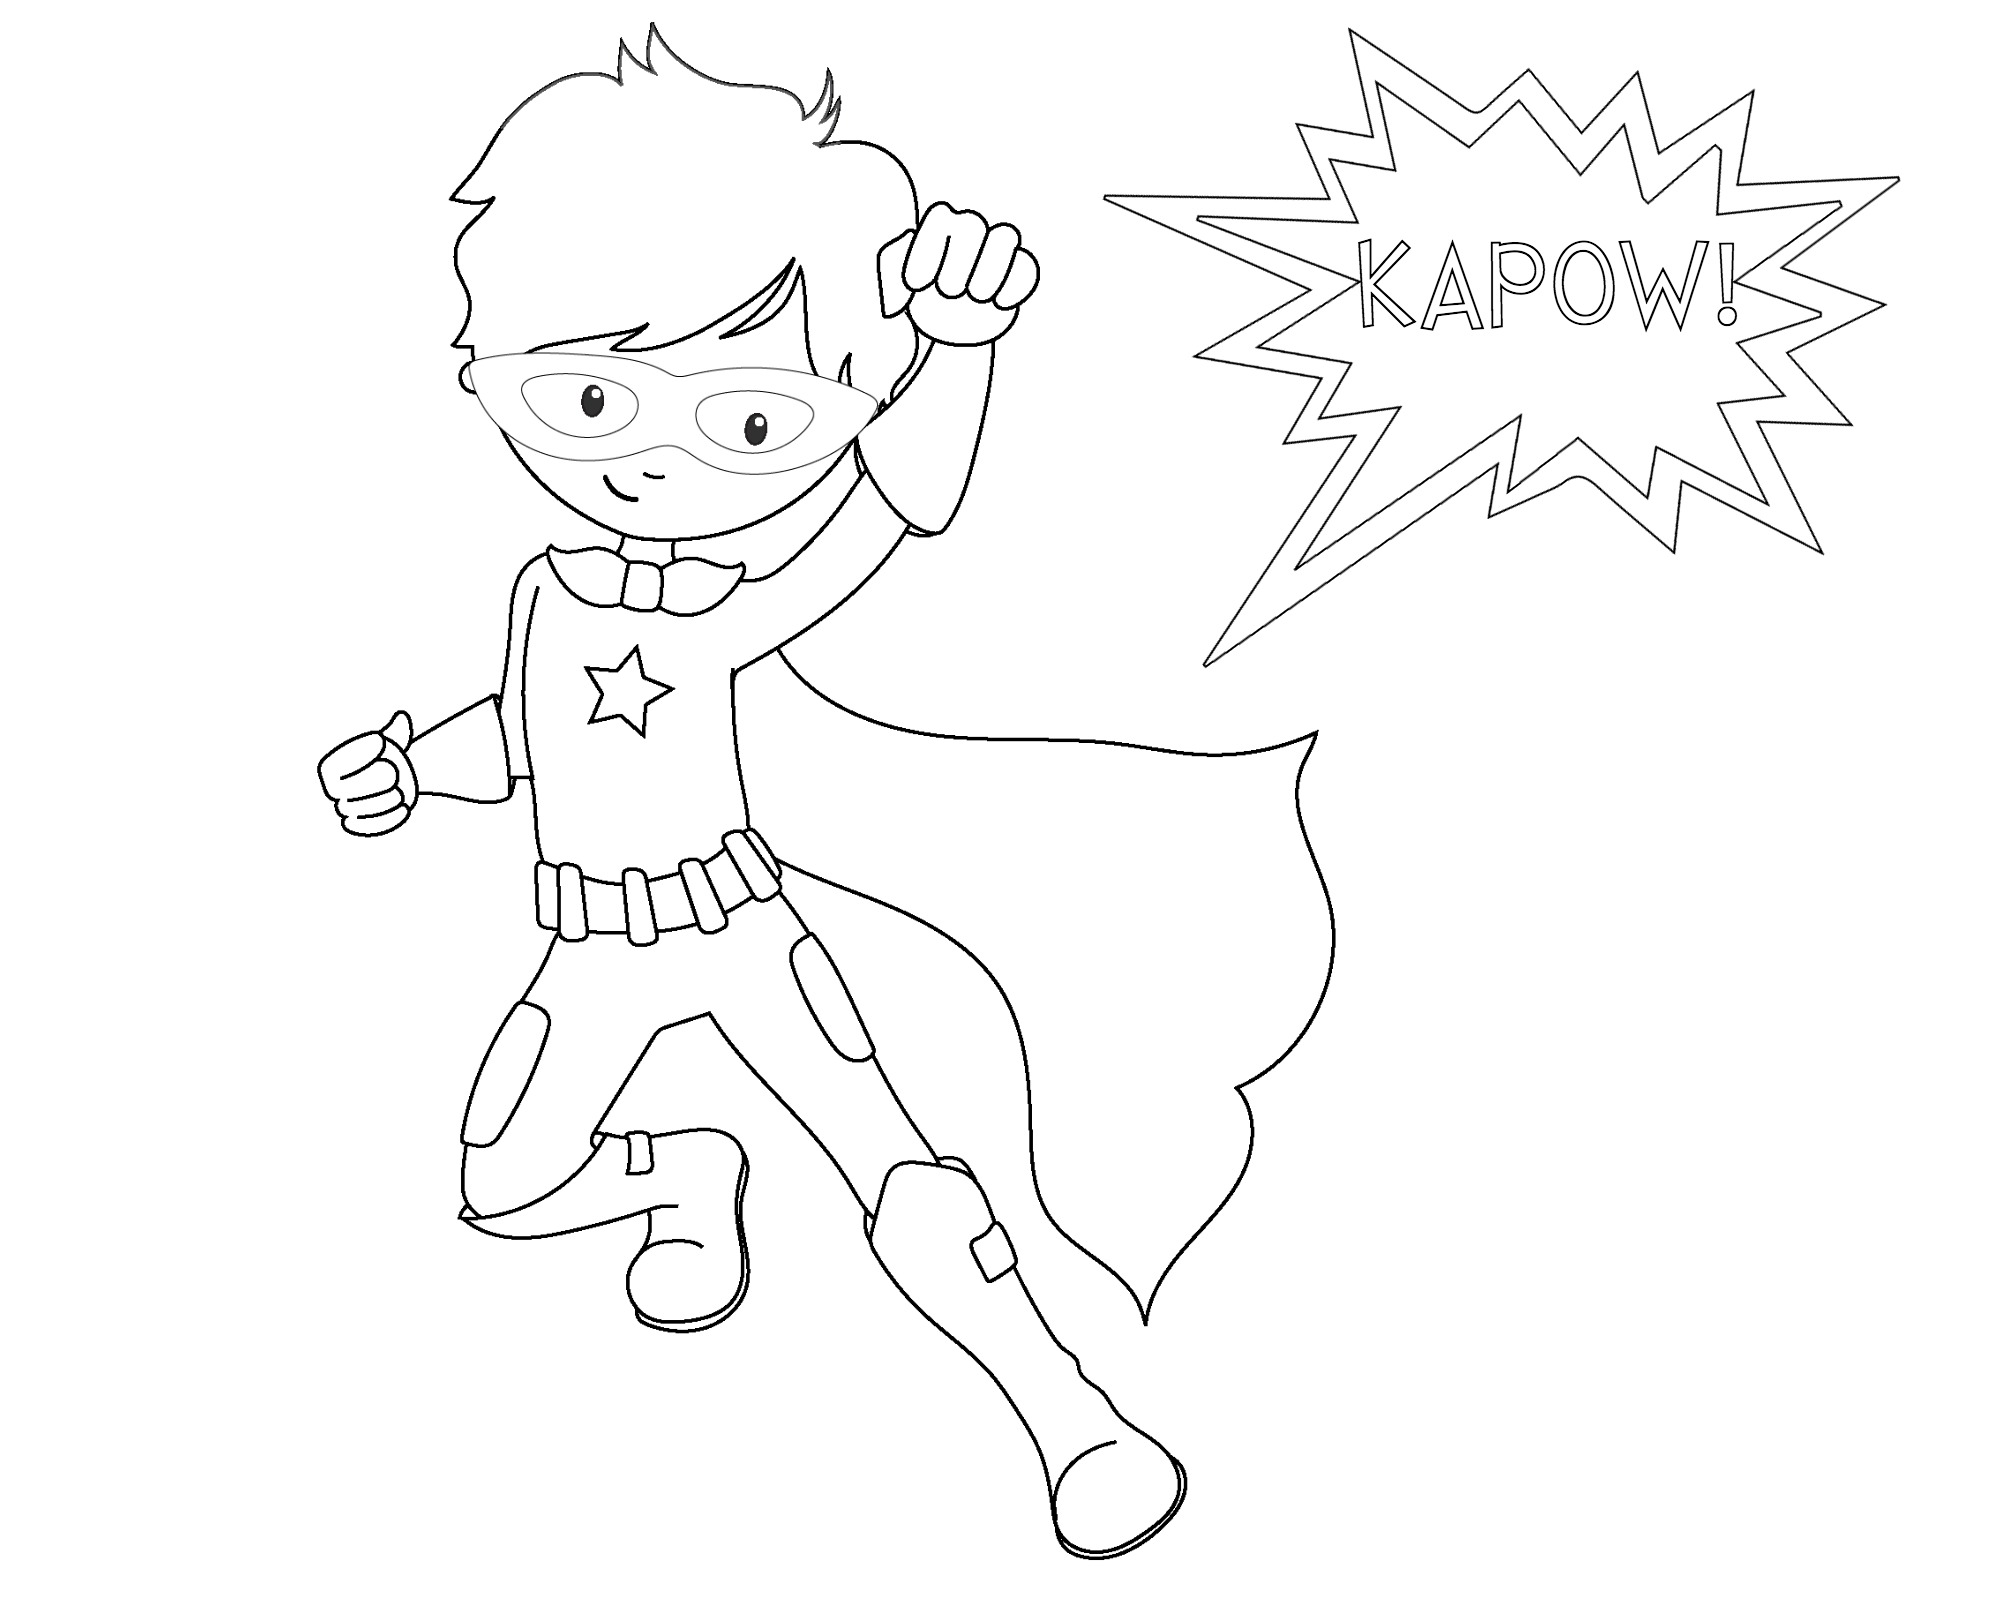 Uncategorized Colouring Superheroes superhero coloring pages crazy little projects kapow page superhero4